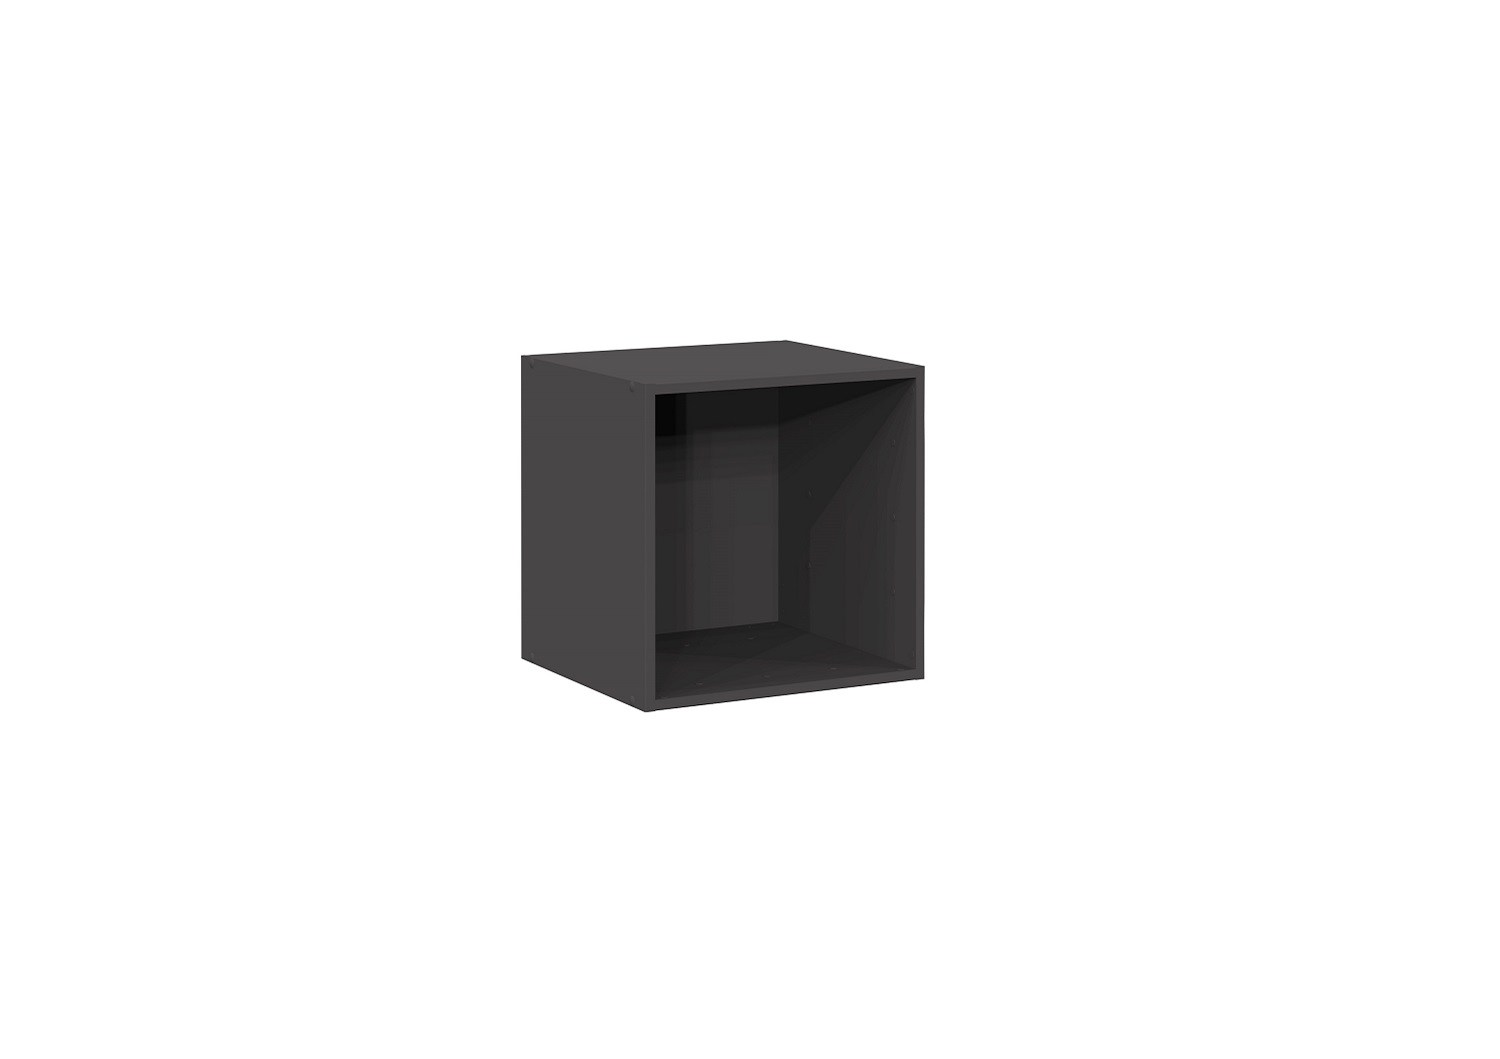 Bilrich Storage Furniture - Multi Kaz 1x1 Cube Grey